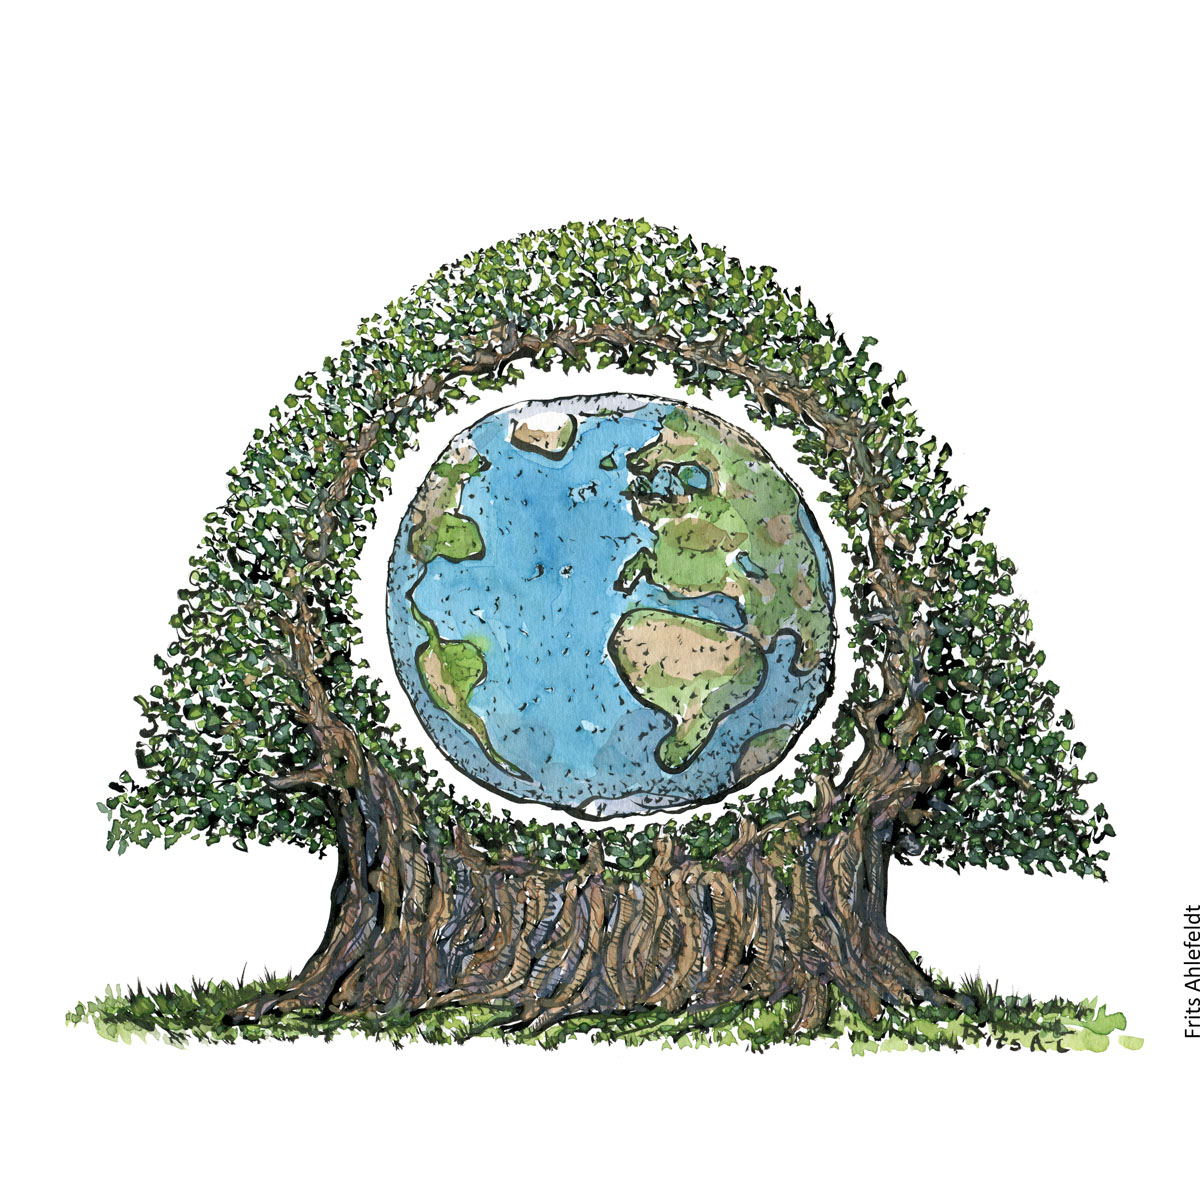 Drawing of Earth planet. inside a huge tree. Environment illustration handmade by Frits Ahlefeldt